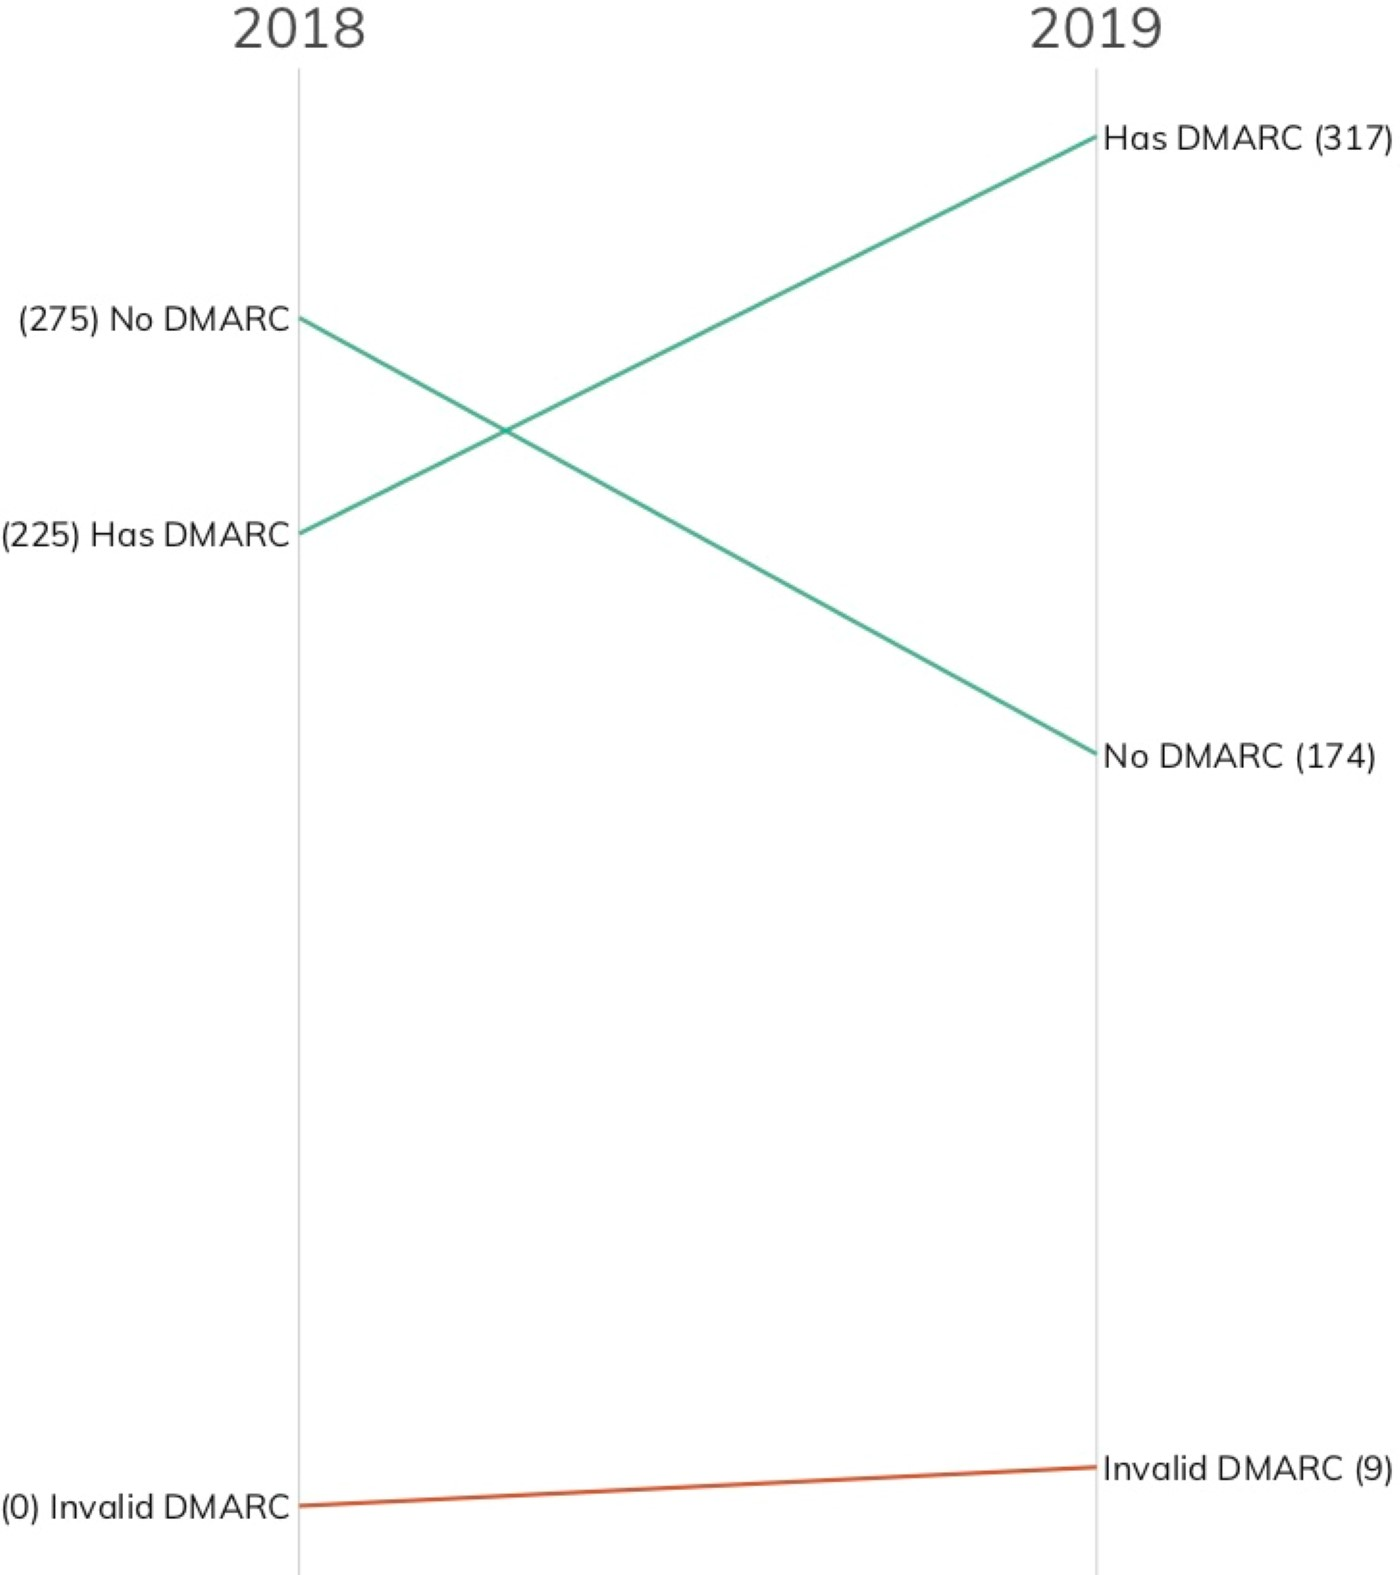 Image showing an increase in Fortune 500 organizations leveraging DMARC for email security